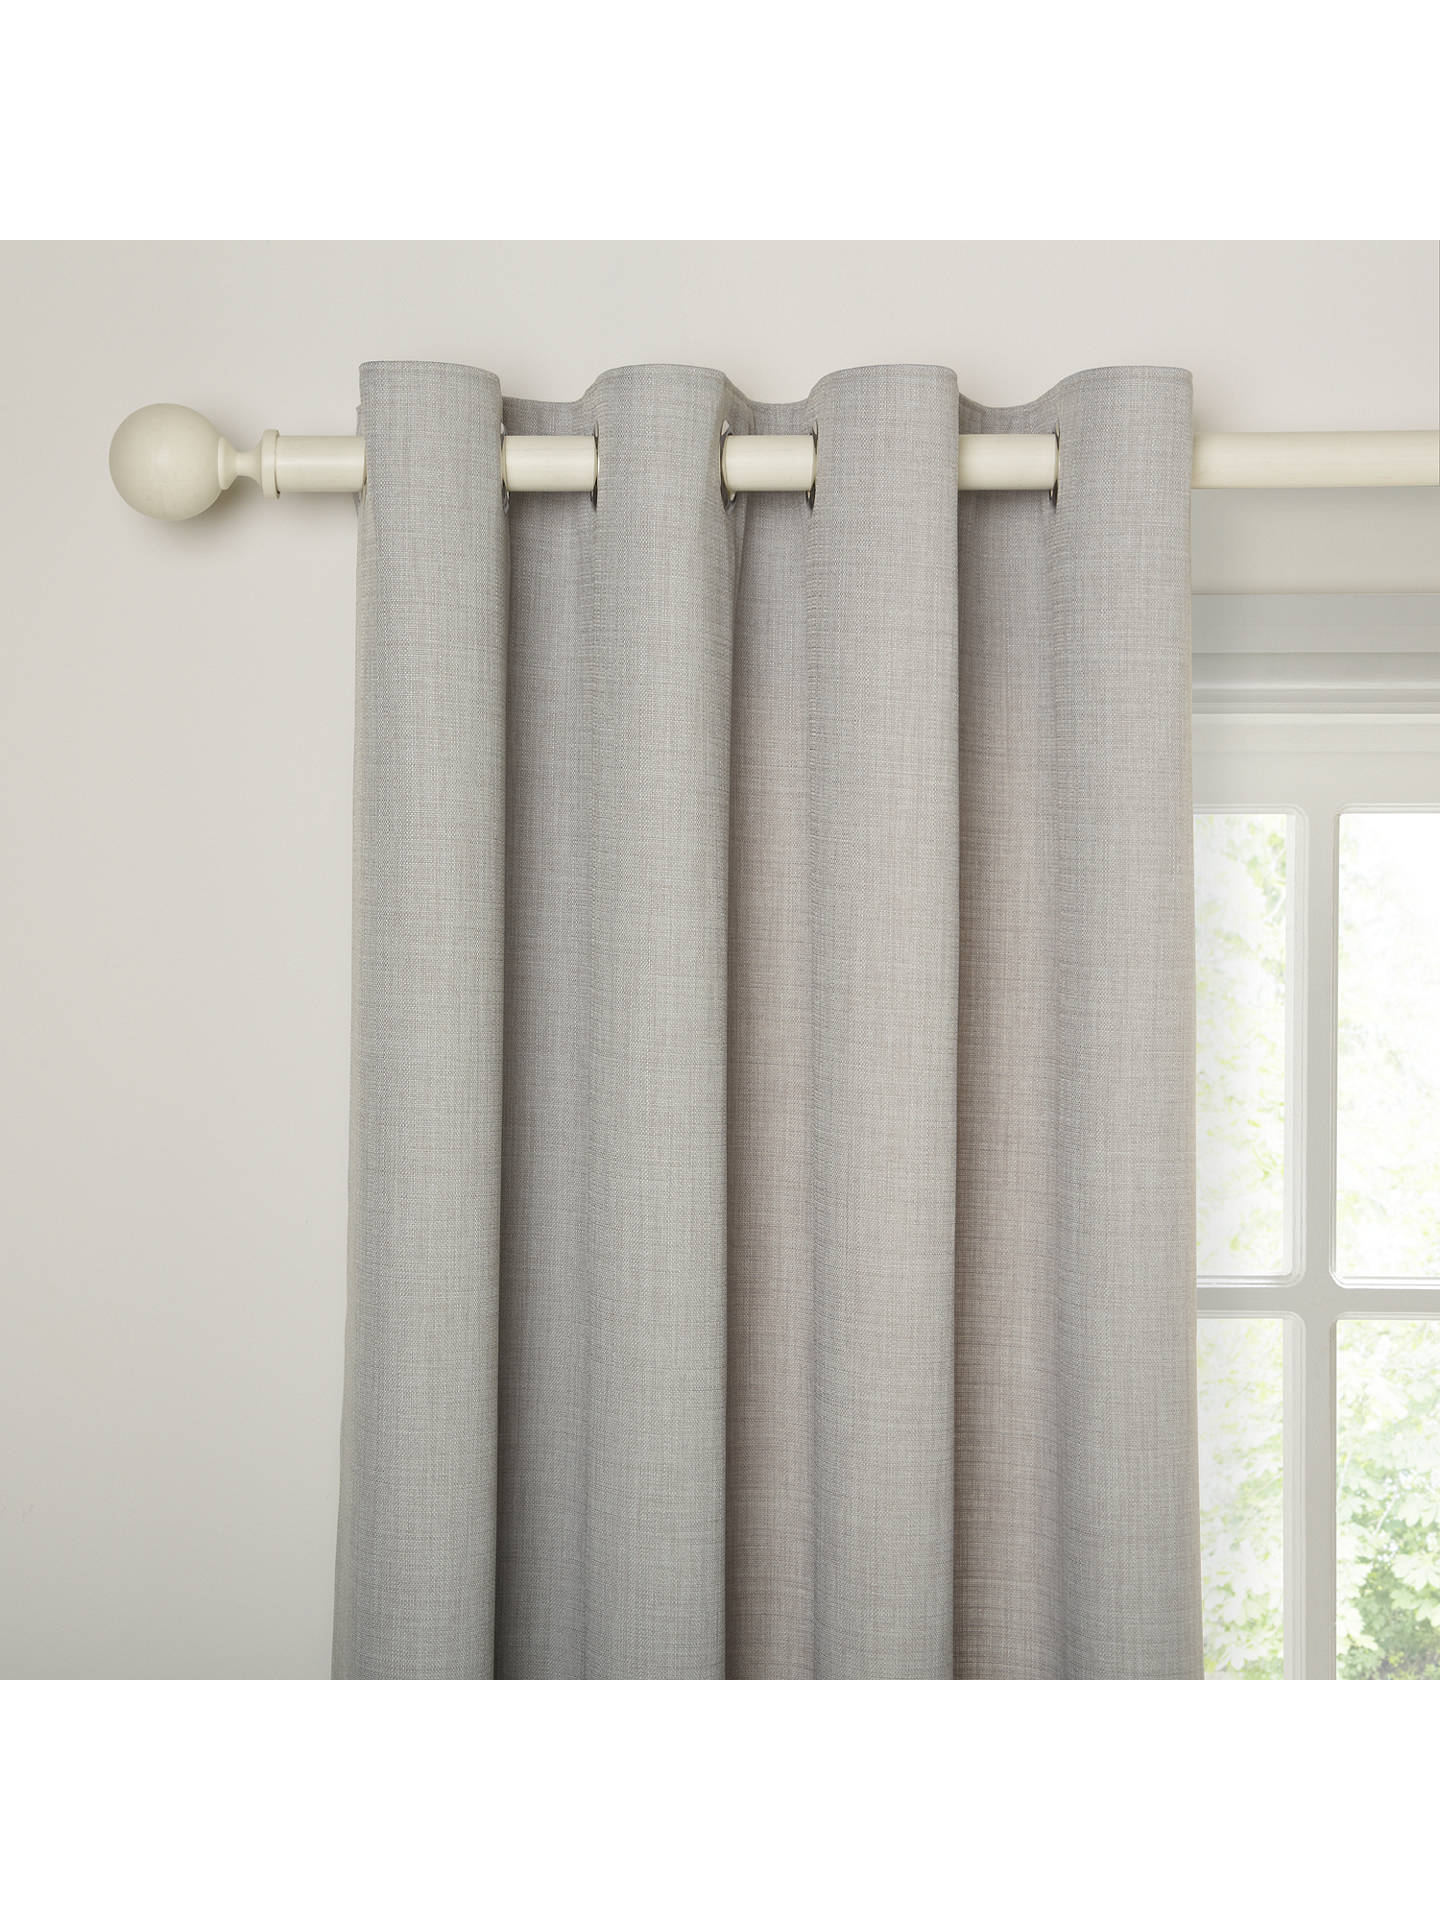 Buy John Lewis & Partners Barathea Pair Lined Eyelet Curtains, Blue Grey, W117 x Drop 228cm Online at johnlewis.com